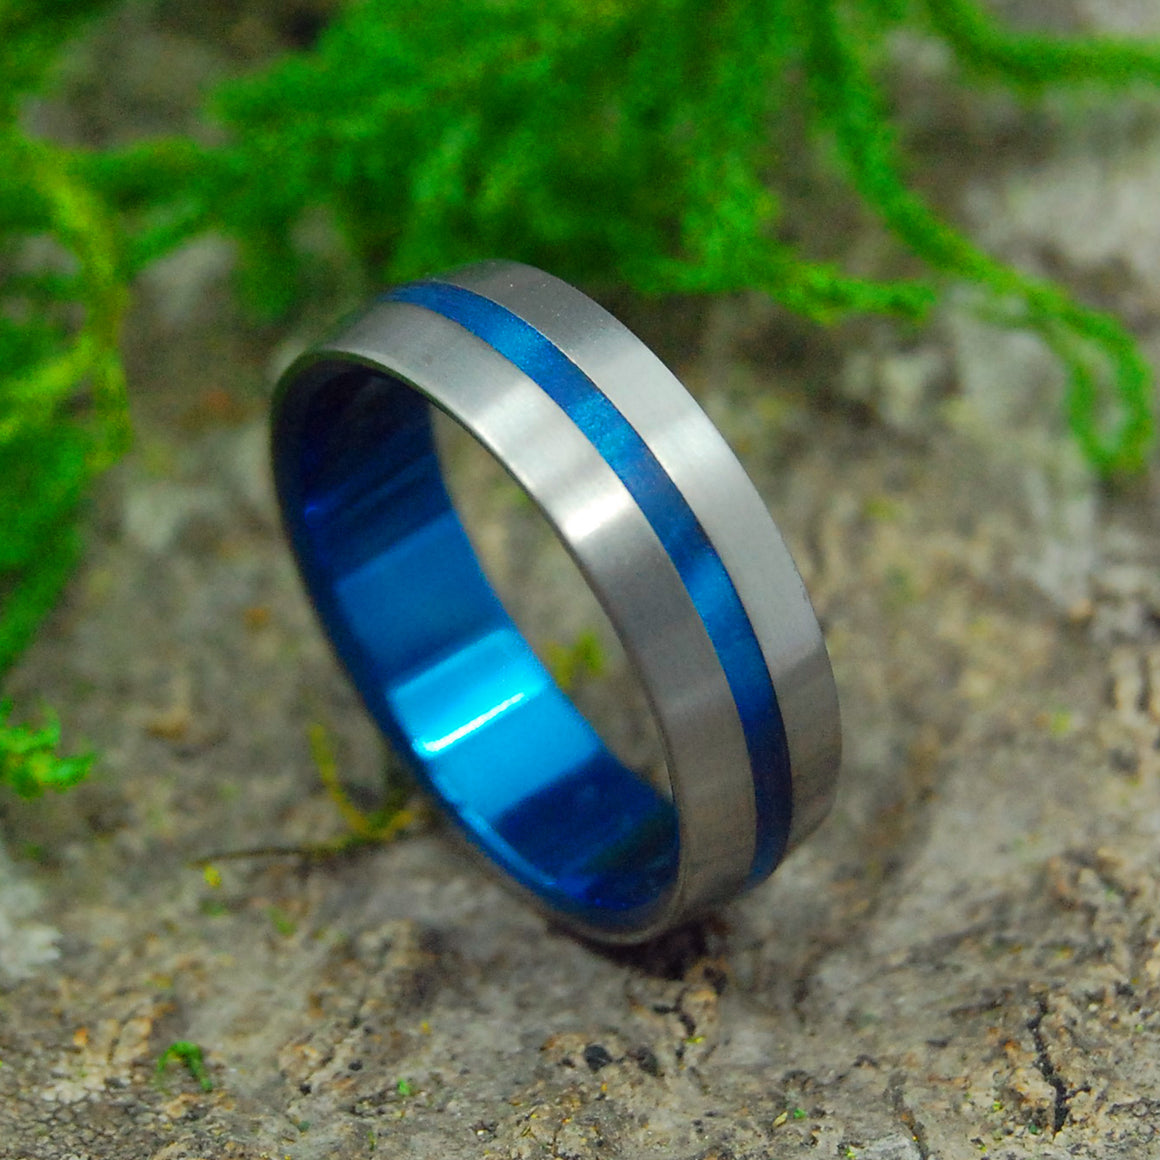 INSPIRED BY BLUE | Blue Marbled Opalescent Resin & Titanium Wedding Rings - Minter and Richter Designs